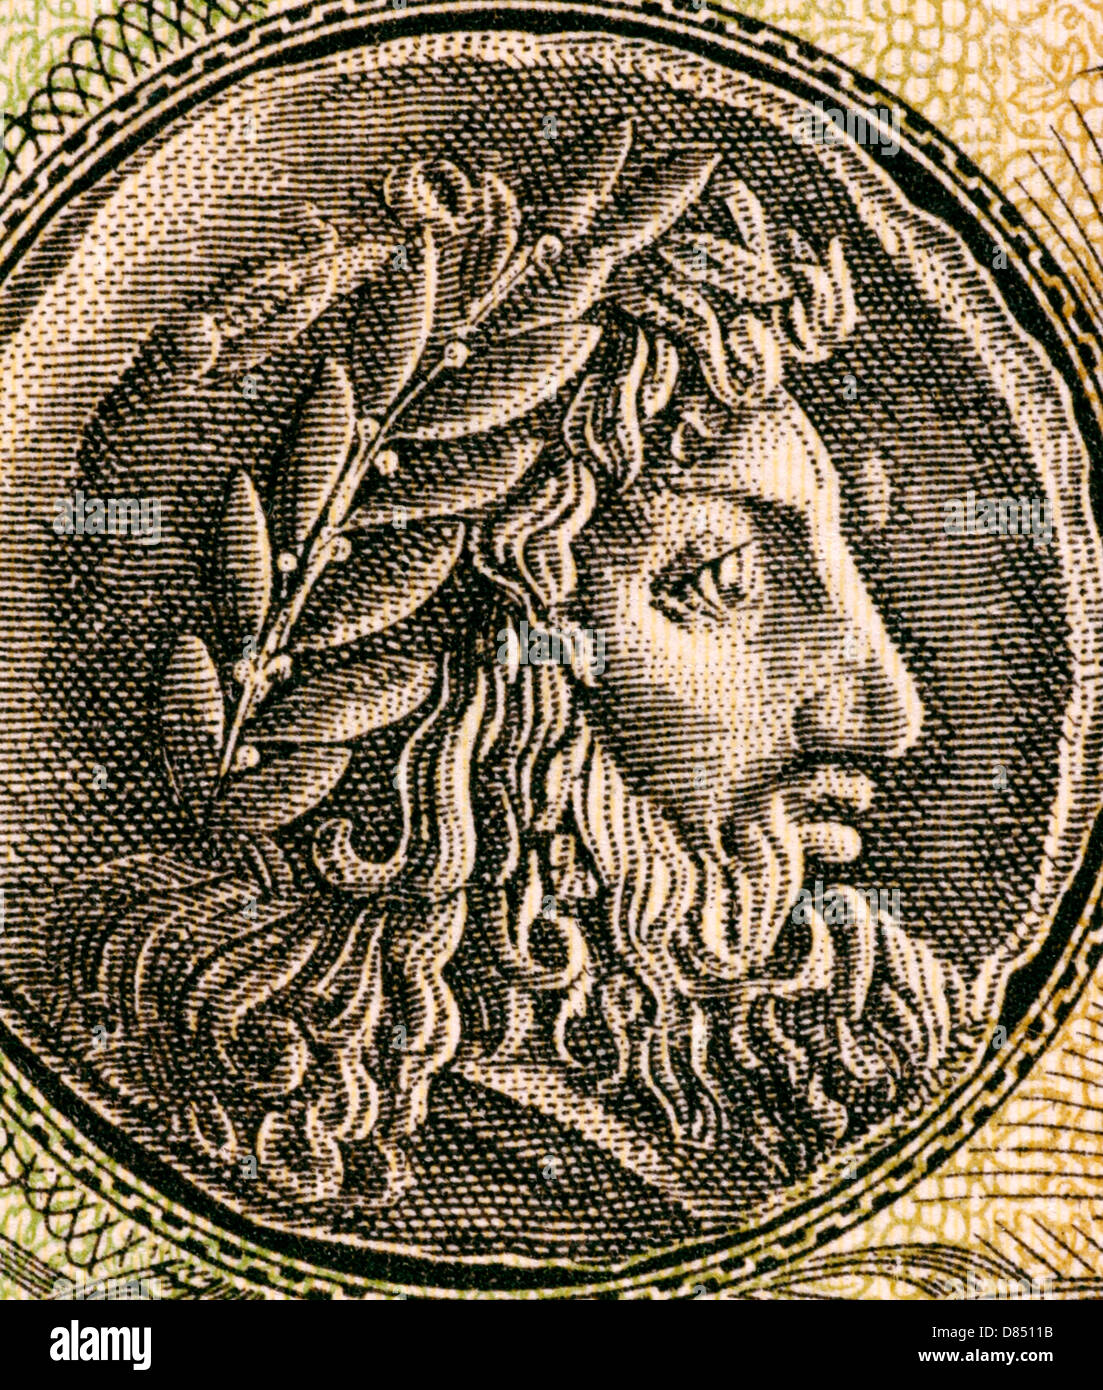 Philip II of Macedon (382–336 BC) on 1000 Drachmai 1950 Banknote from Greece. - Stock Image